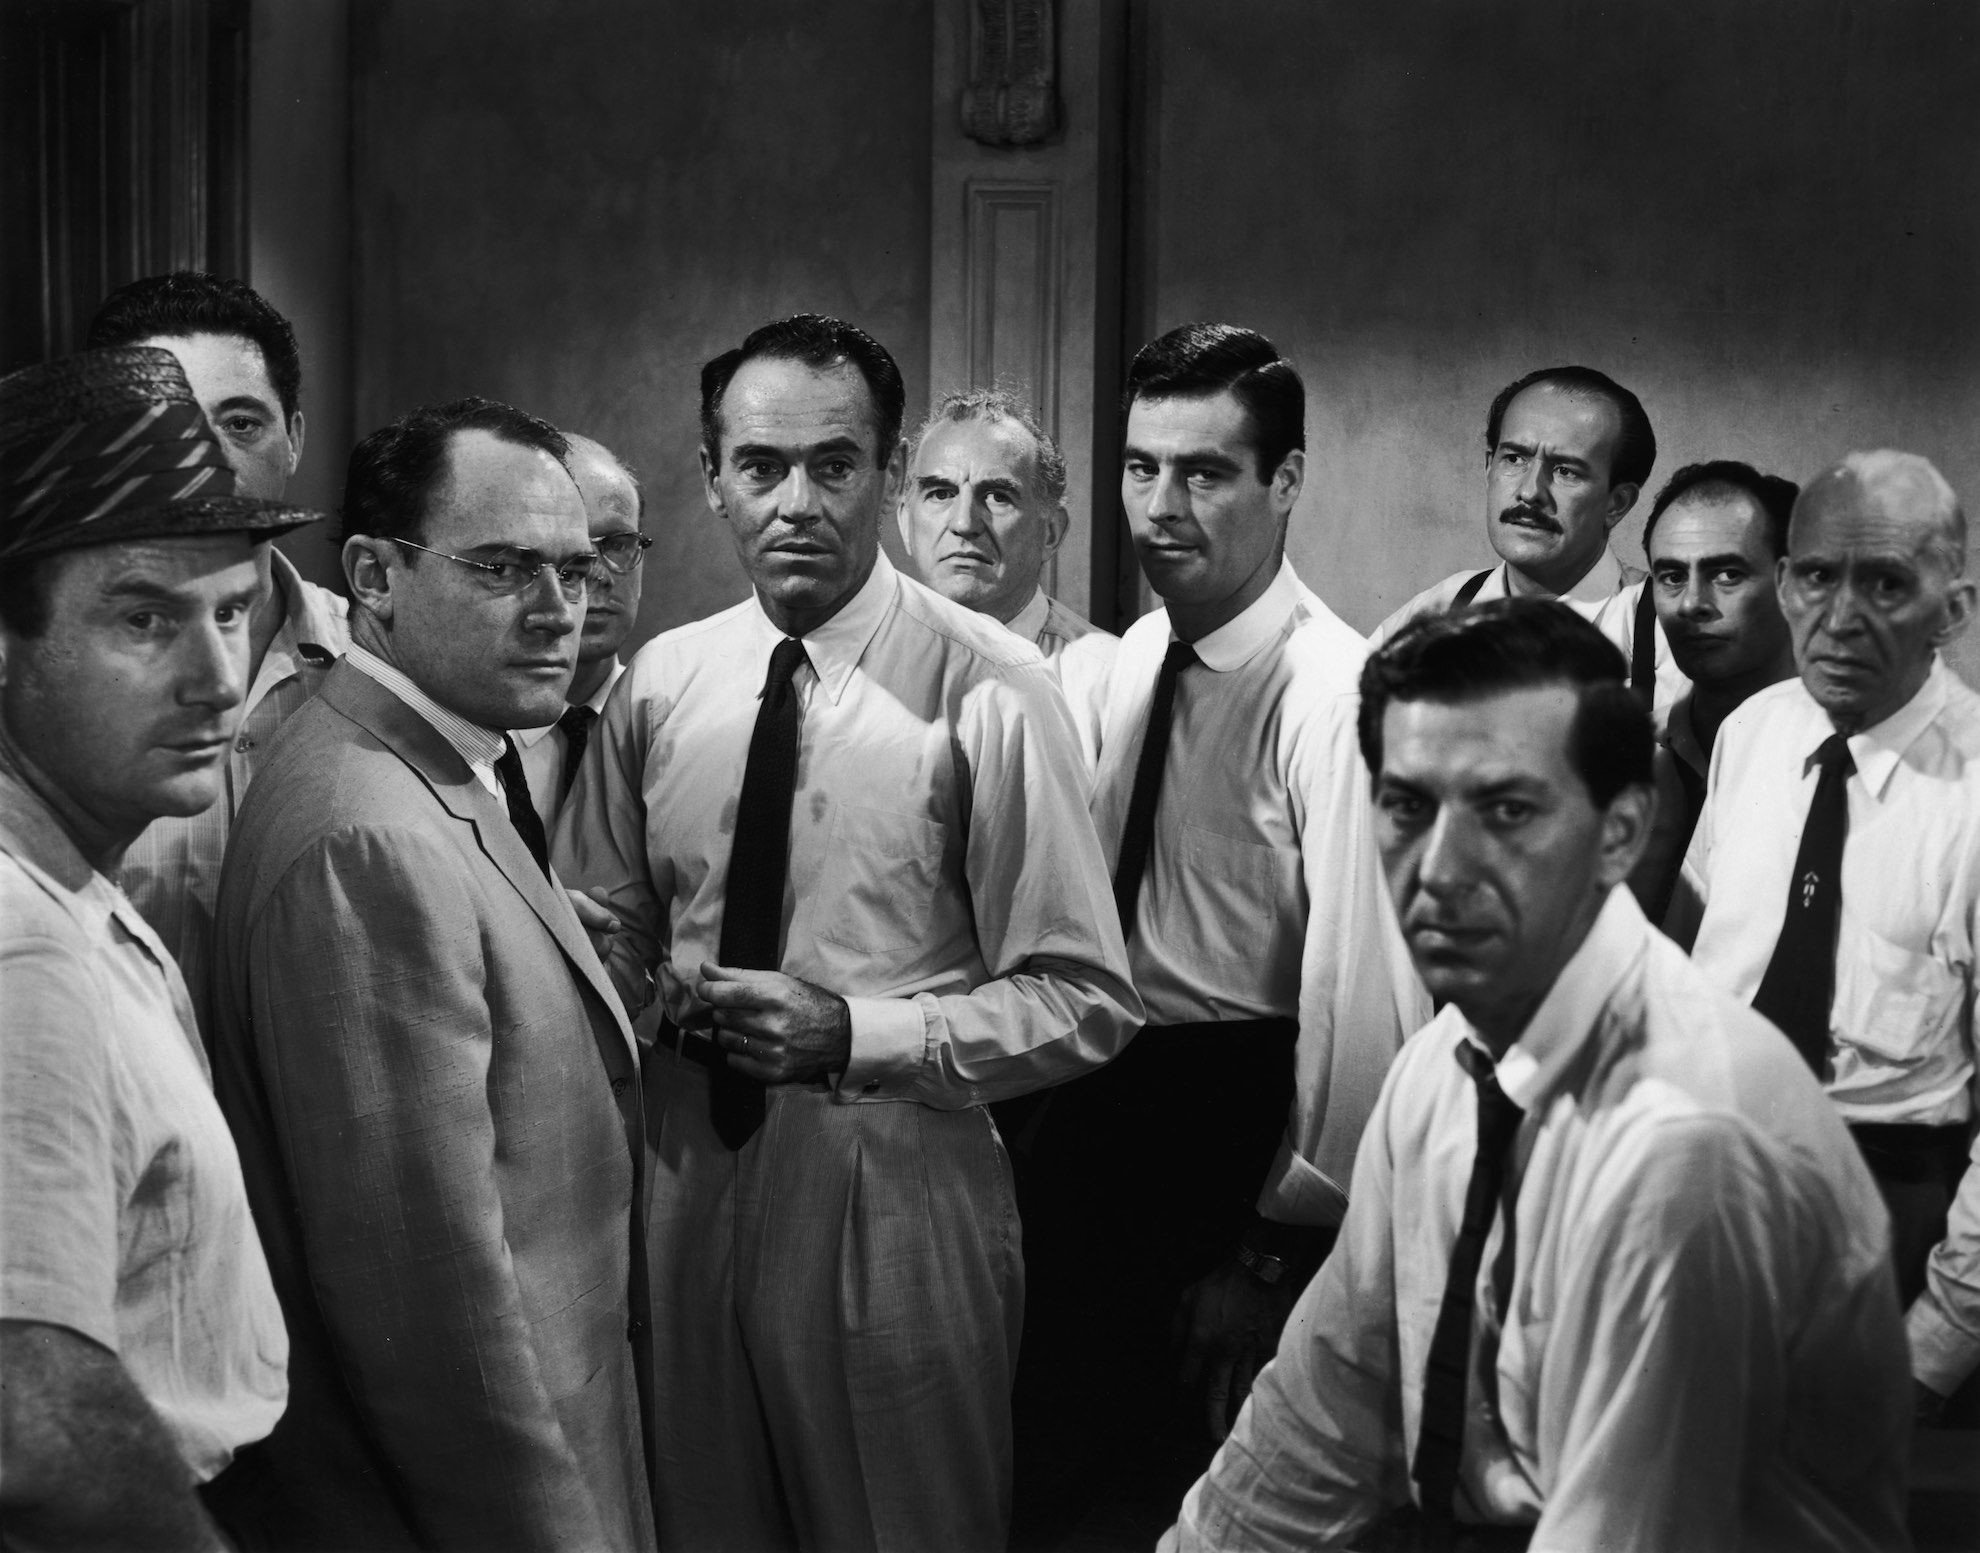 12 Angry Men images